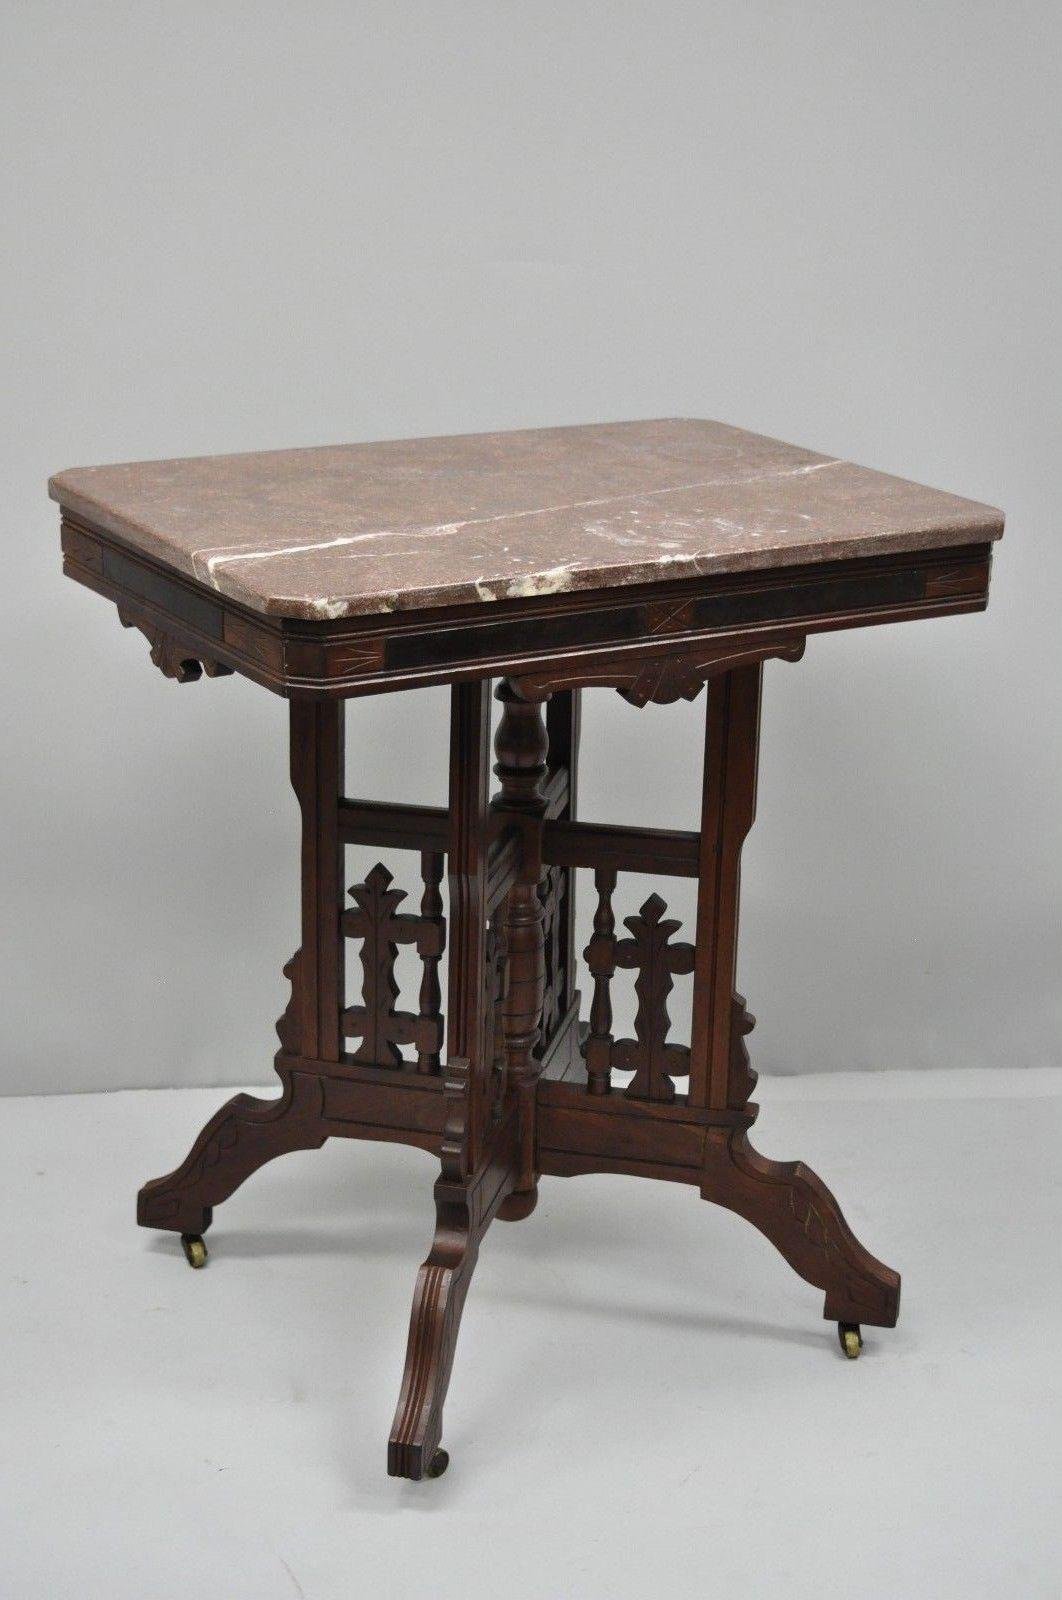 Superbe Antique American Eastlake Victorian Marble Top Parlor Side Table Details:  Purple Marble Top, Rolling